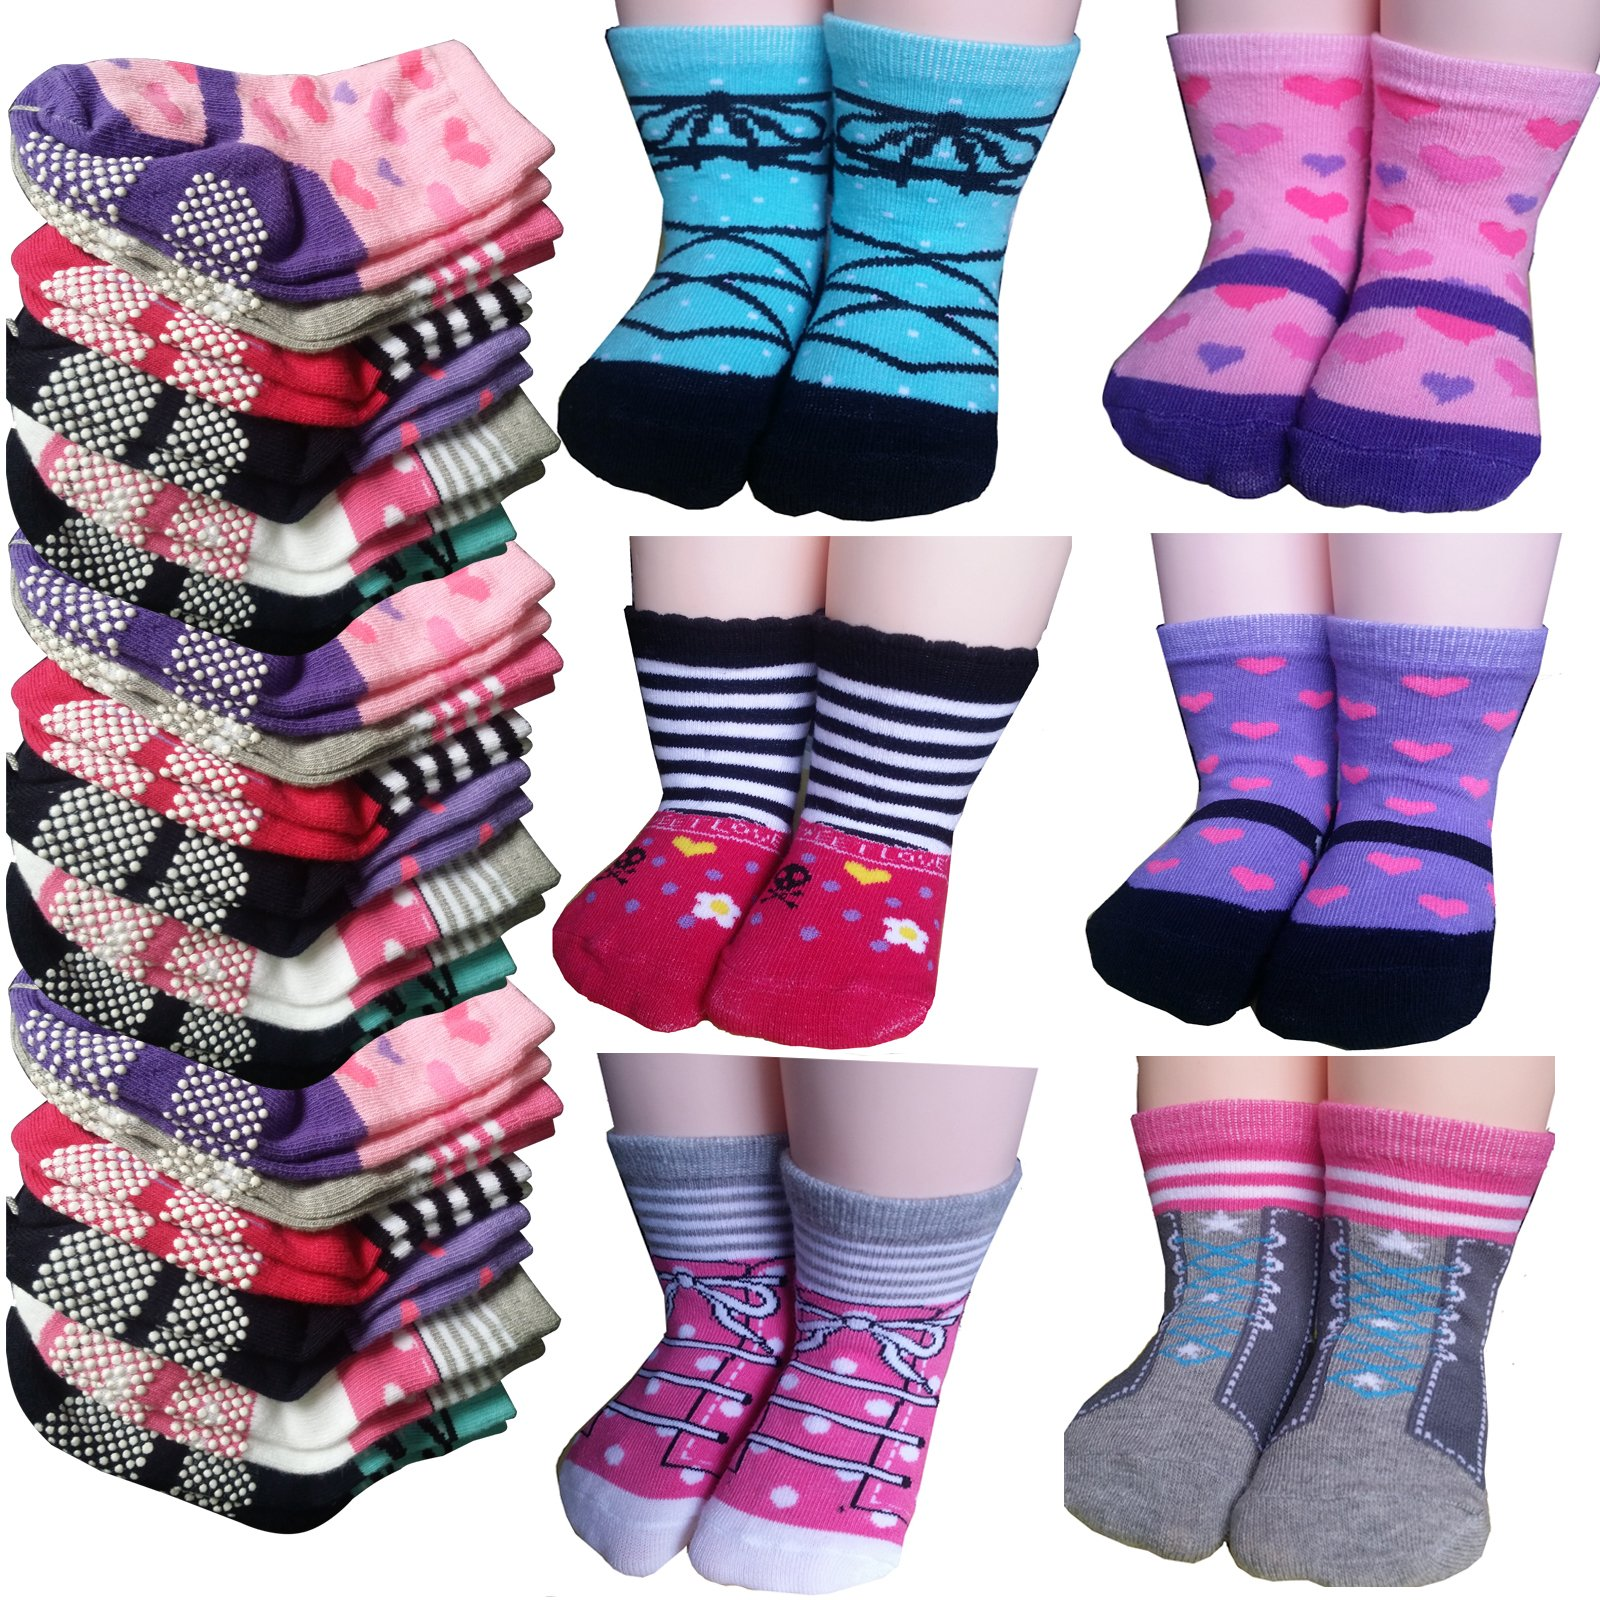 Non-Skid Gripper Assorted 6 Pairs 12-24 Months Baby Girl Toddler Socks Anti Slip Stretch Knit Grips Cotton Shoe Socks Slippers gift